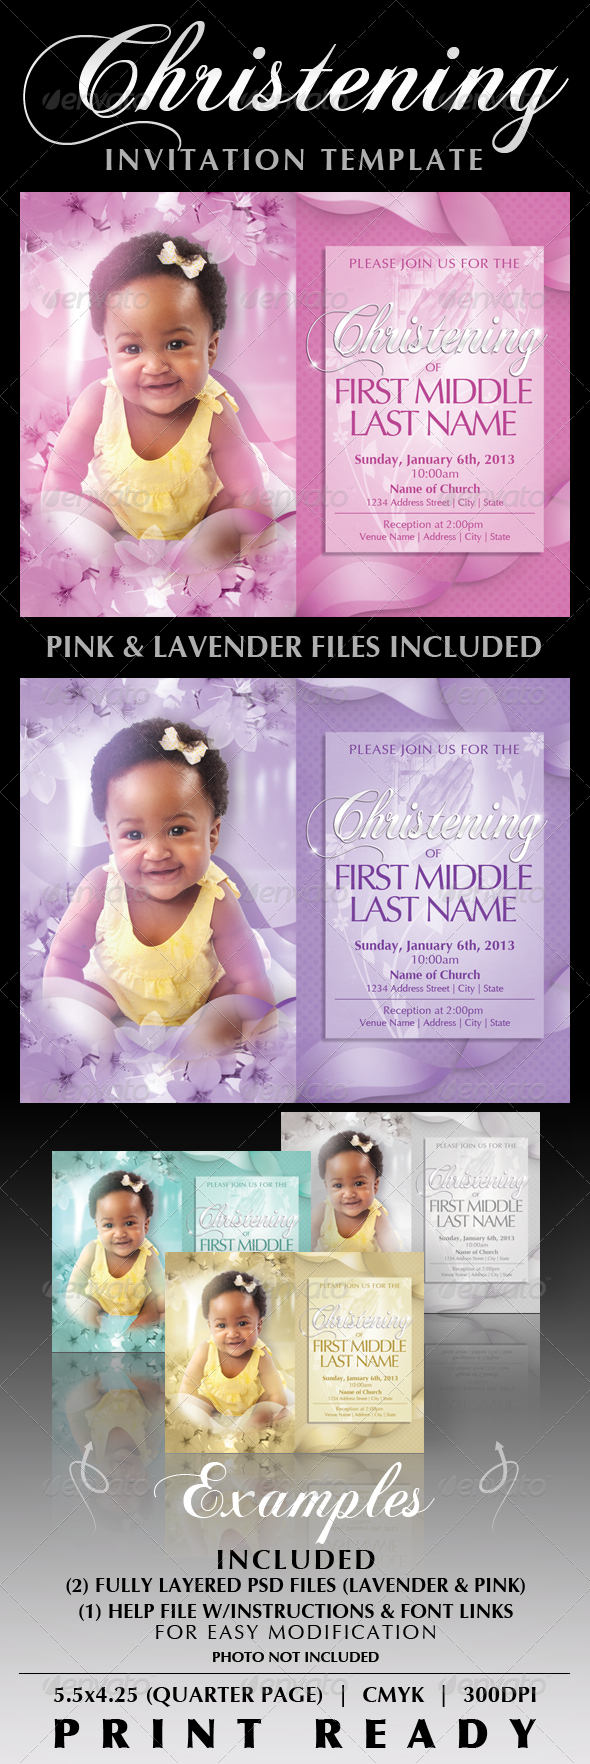 Baby Christening Invitation Templates by CreativB | GraphicRiver